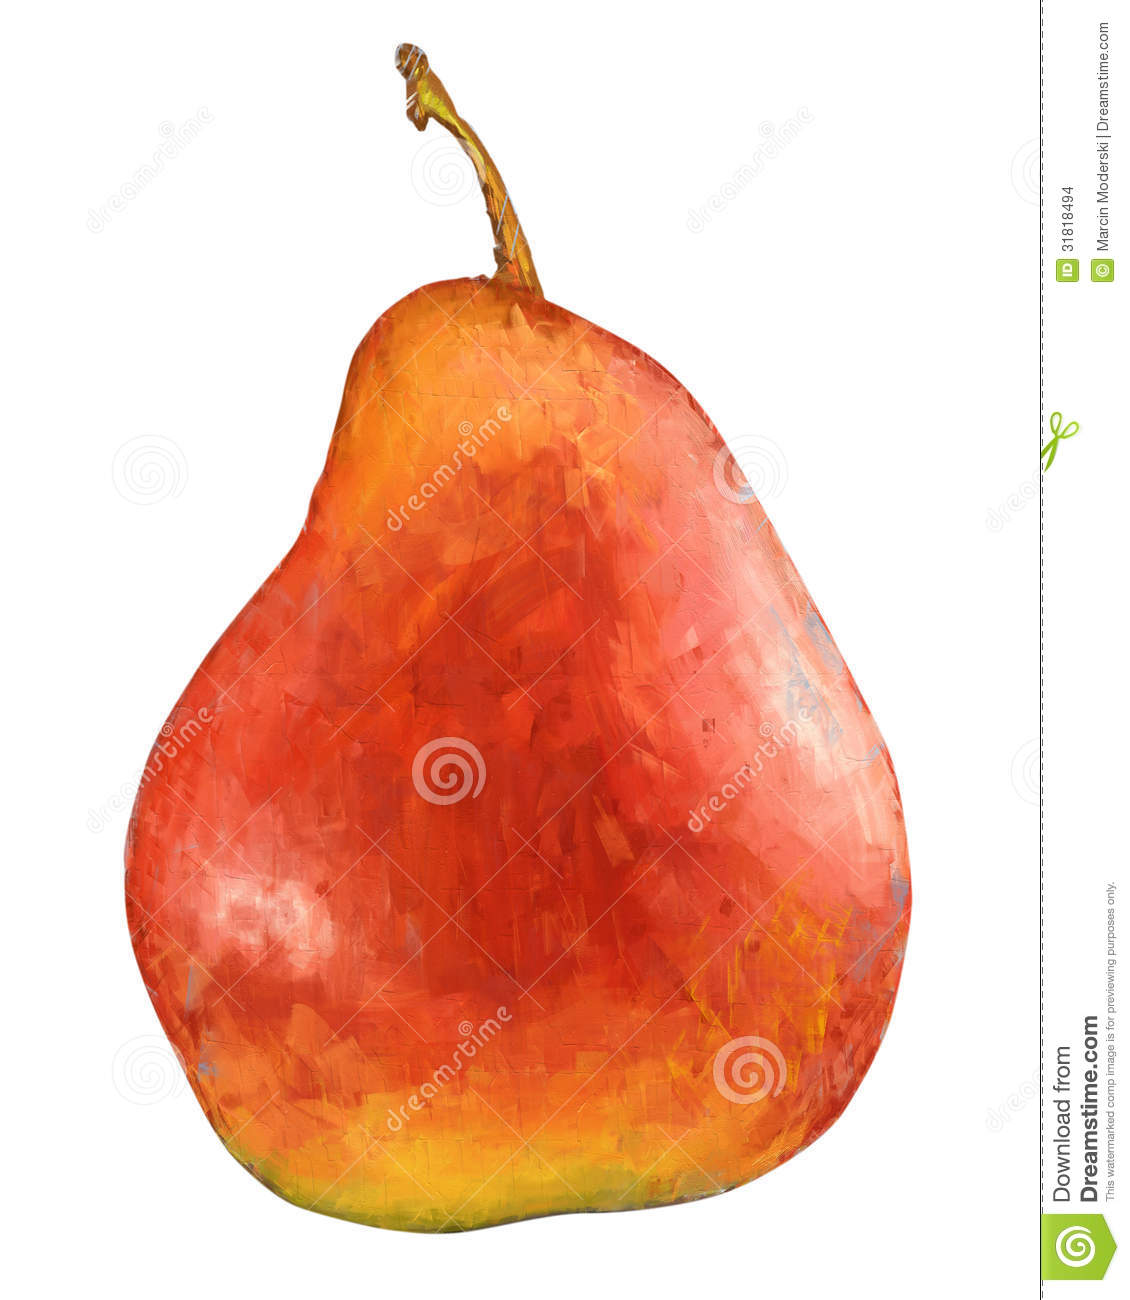 how to tell if a bosc pear is ripe